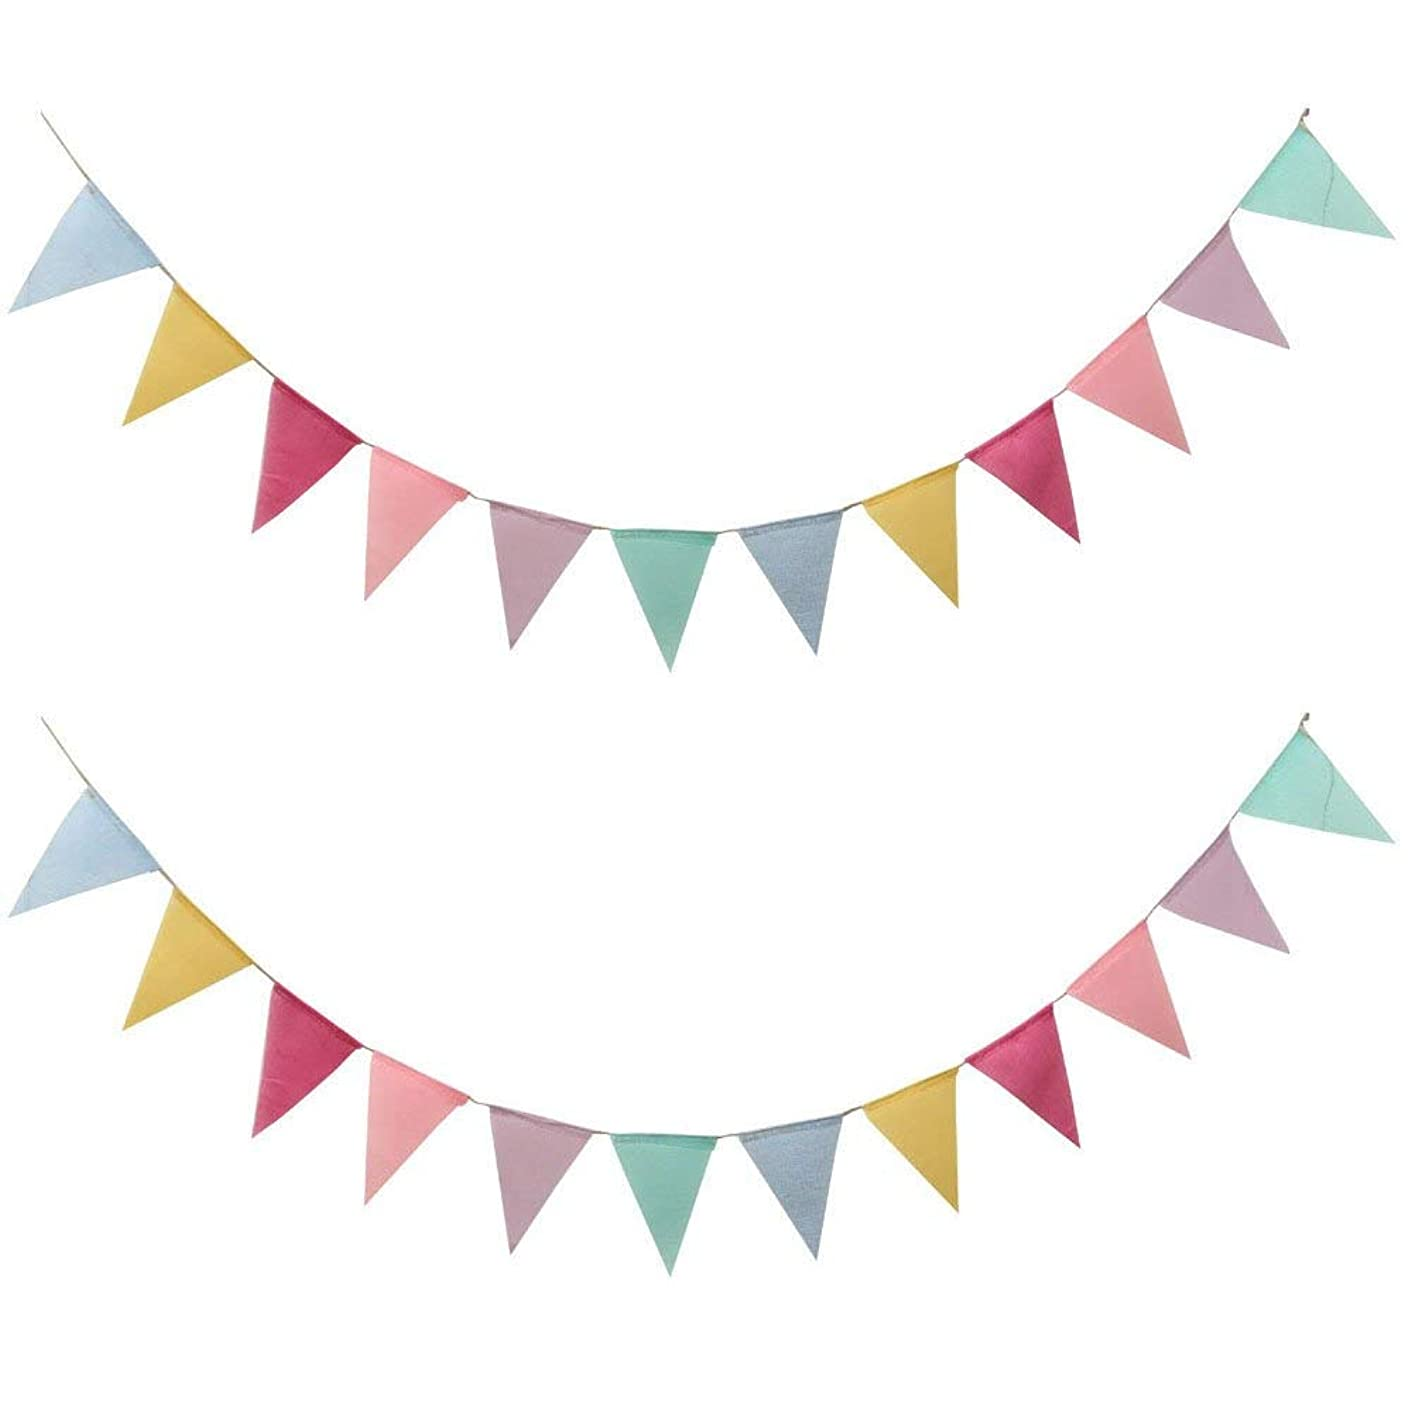 Auony 2 Pack Triangle Flag Banner, 24 PCS Multicolored Burlap Pennant Flag Bunting Banner for Wedding Birthday Party Decoration